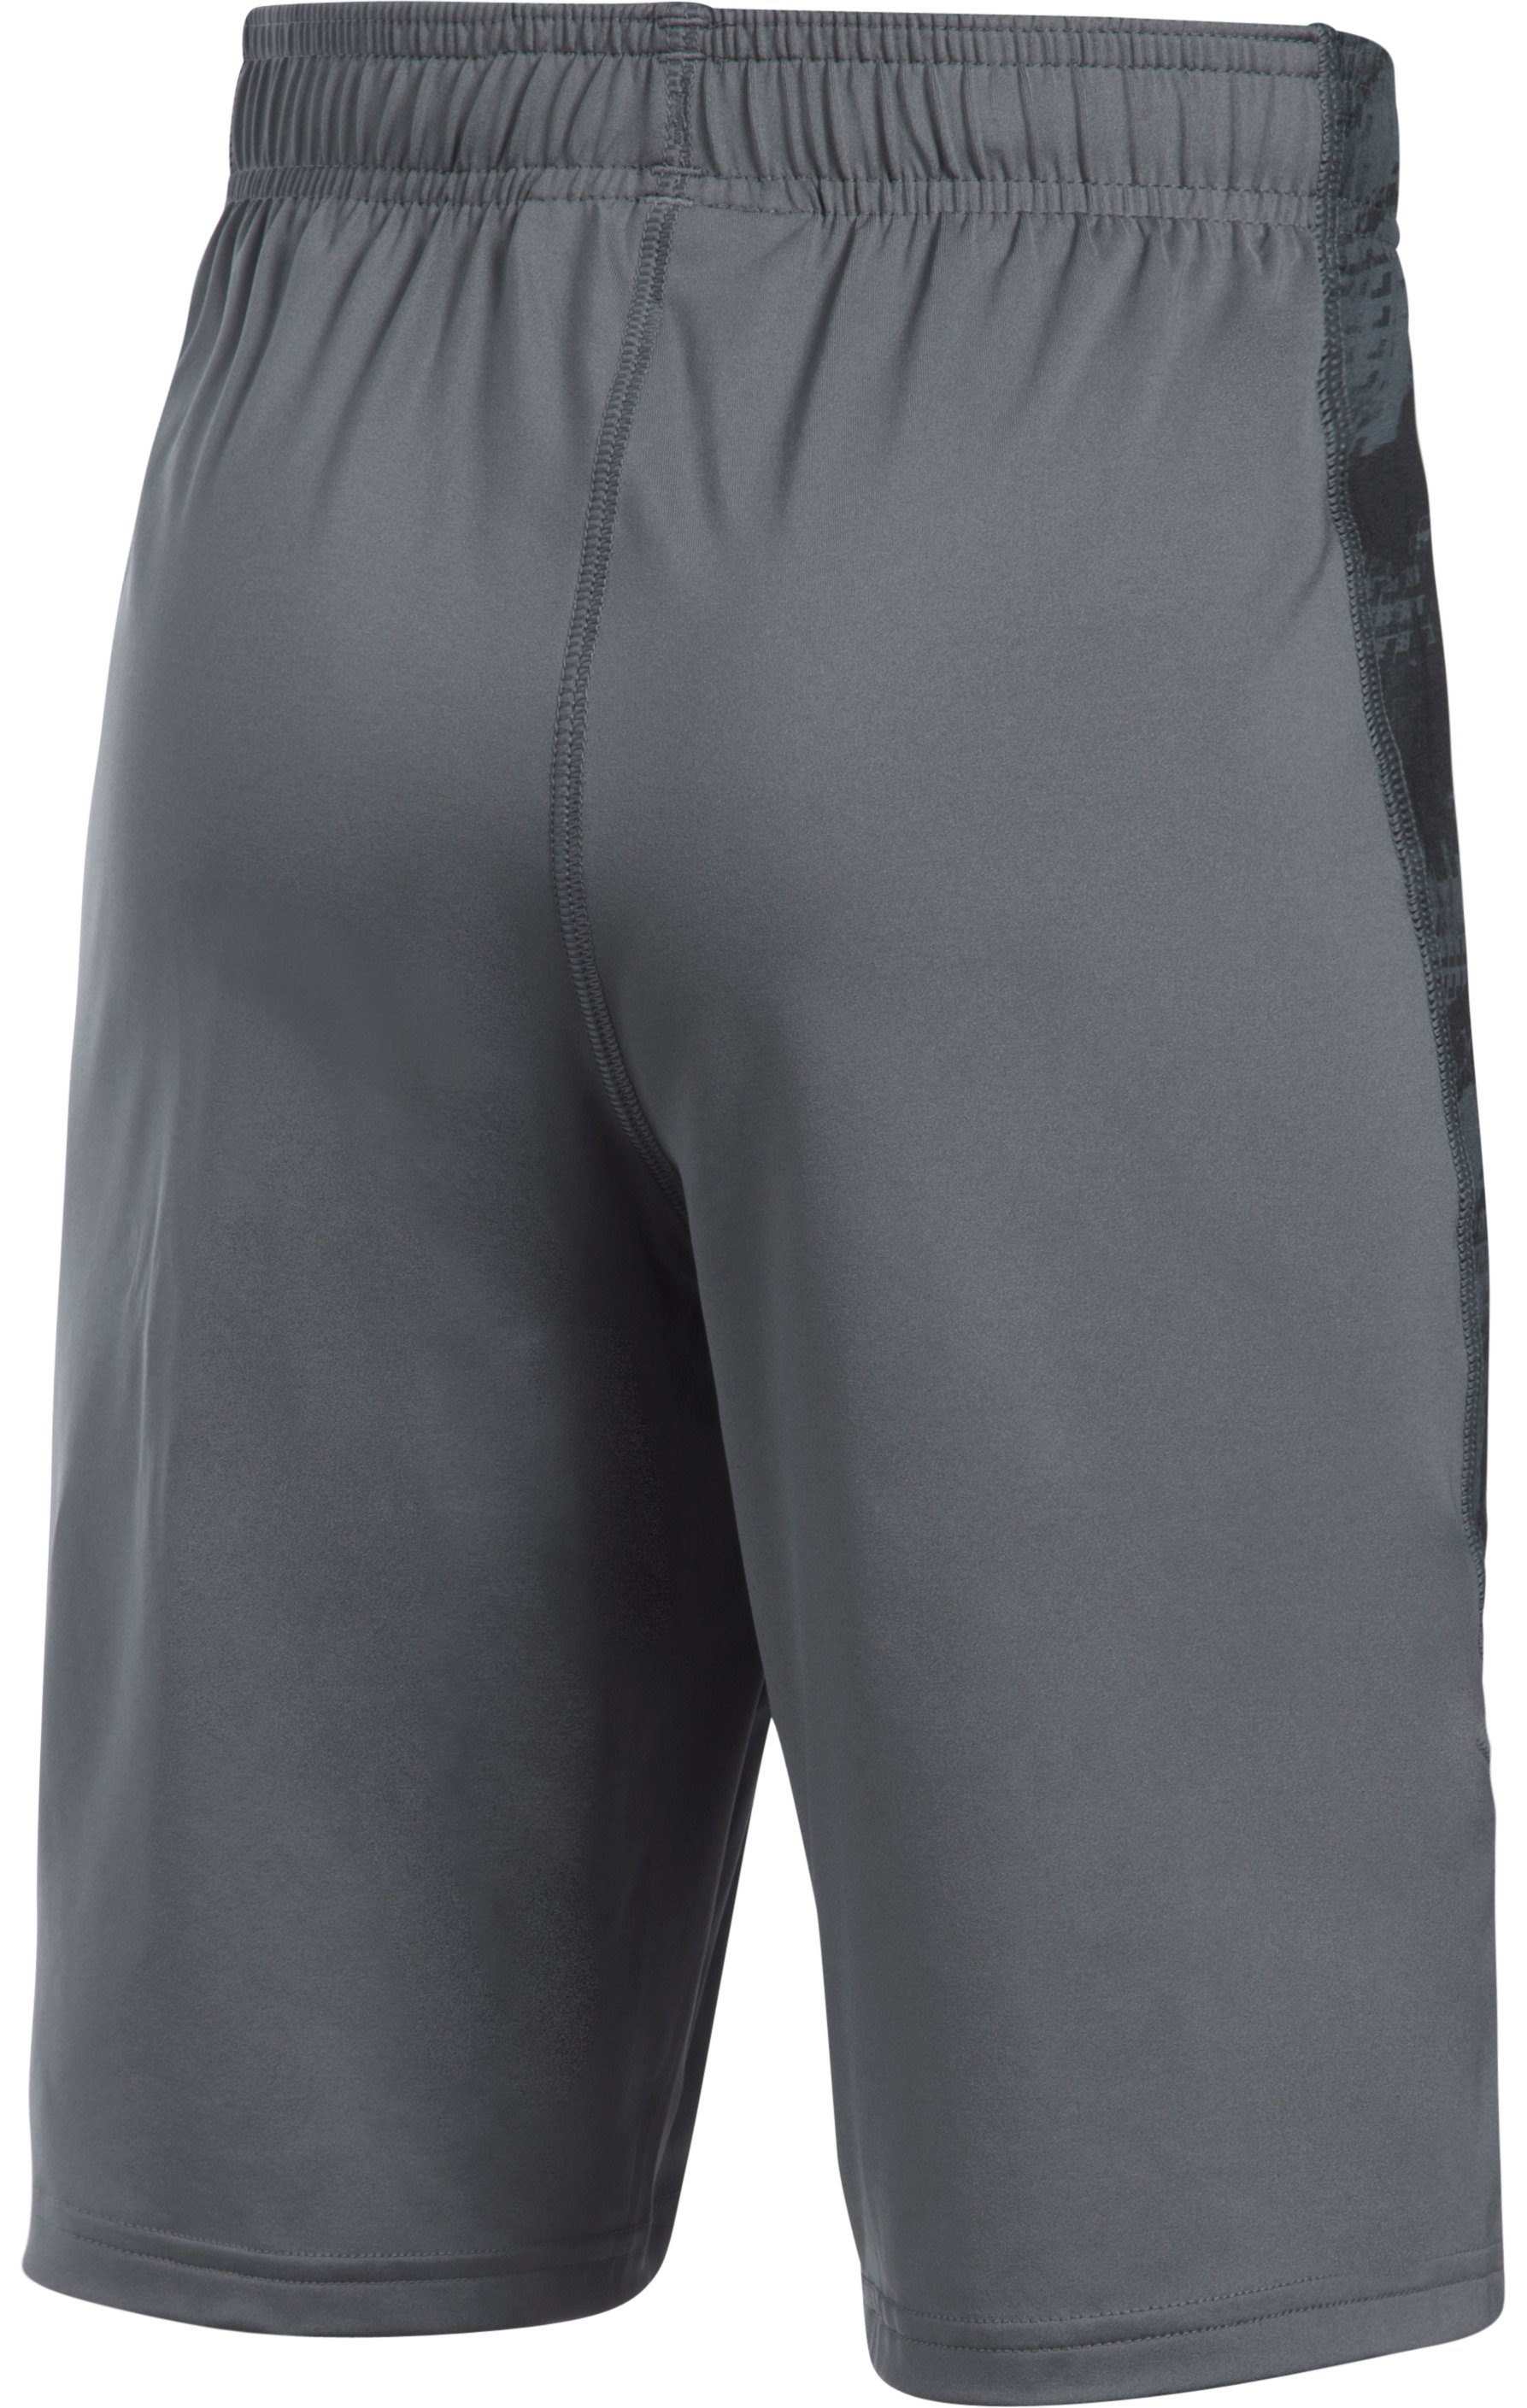 Boys' UA Baseball Shorts, Graphite,